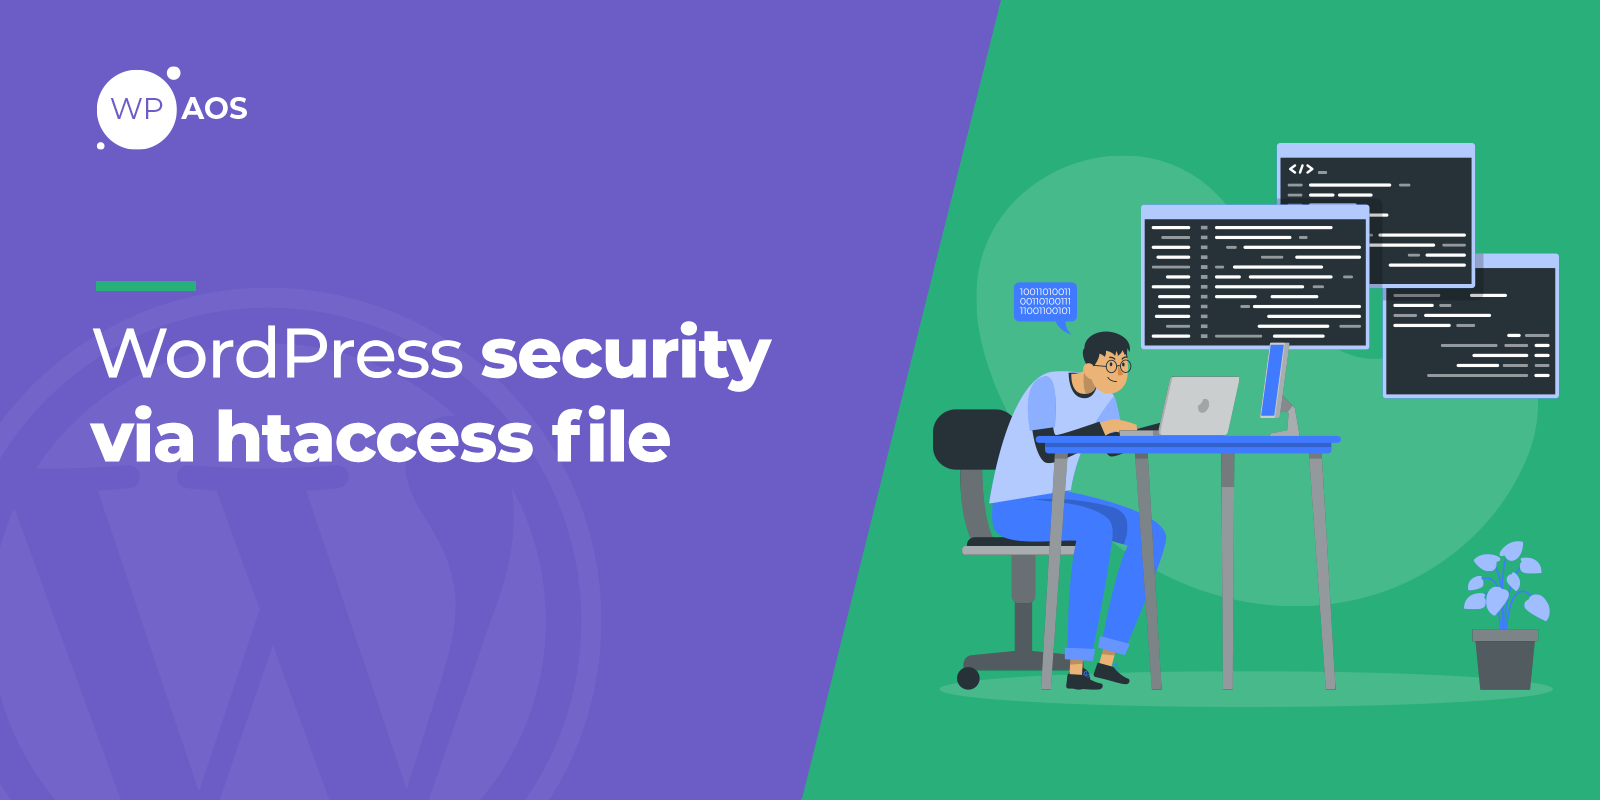 wordpress-security-via-htaccess-file